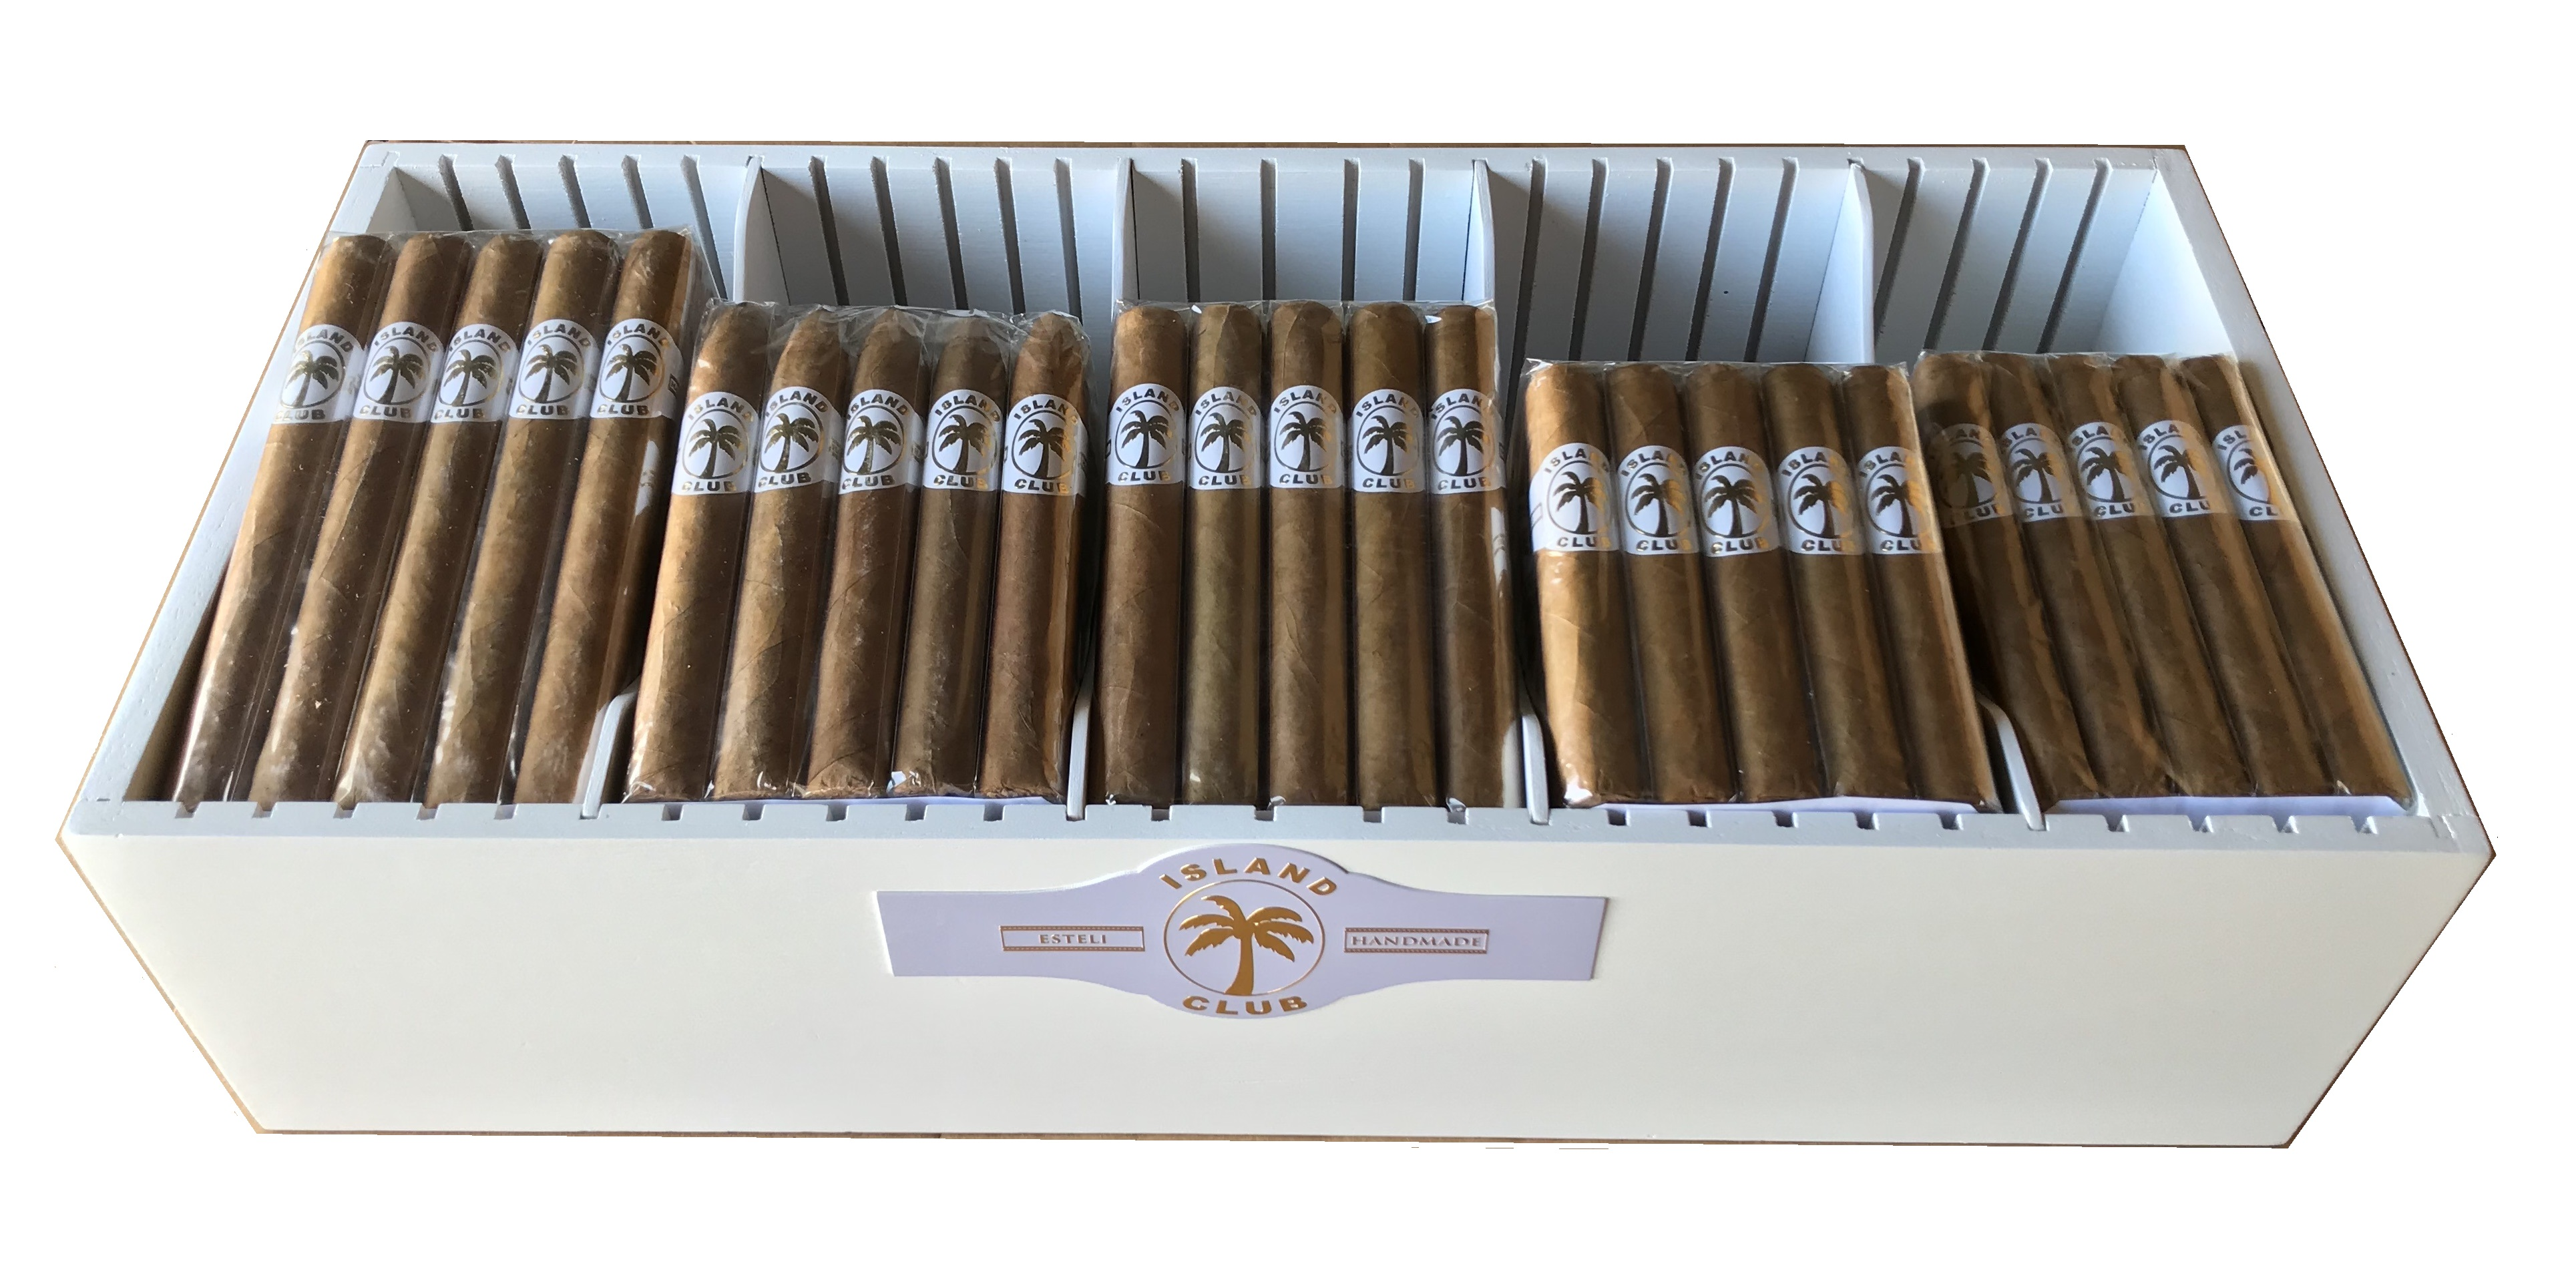 Cigar News: Island Lifestyle Importers Announces Availability of Island Club Cigars